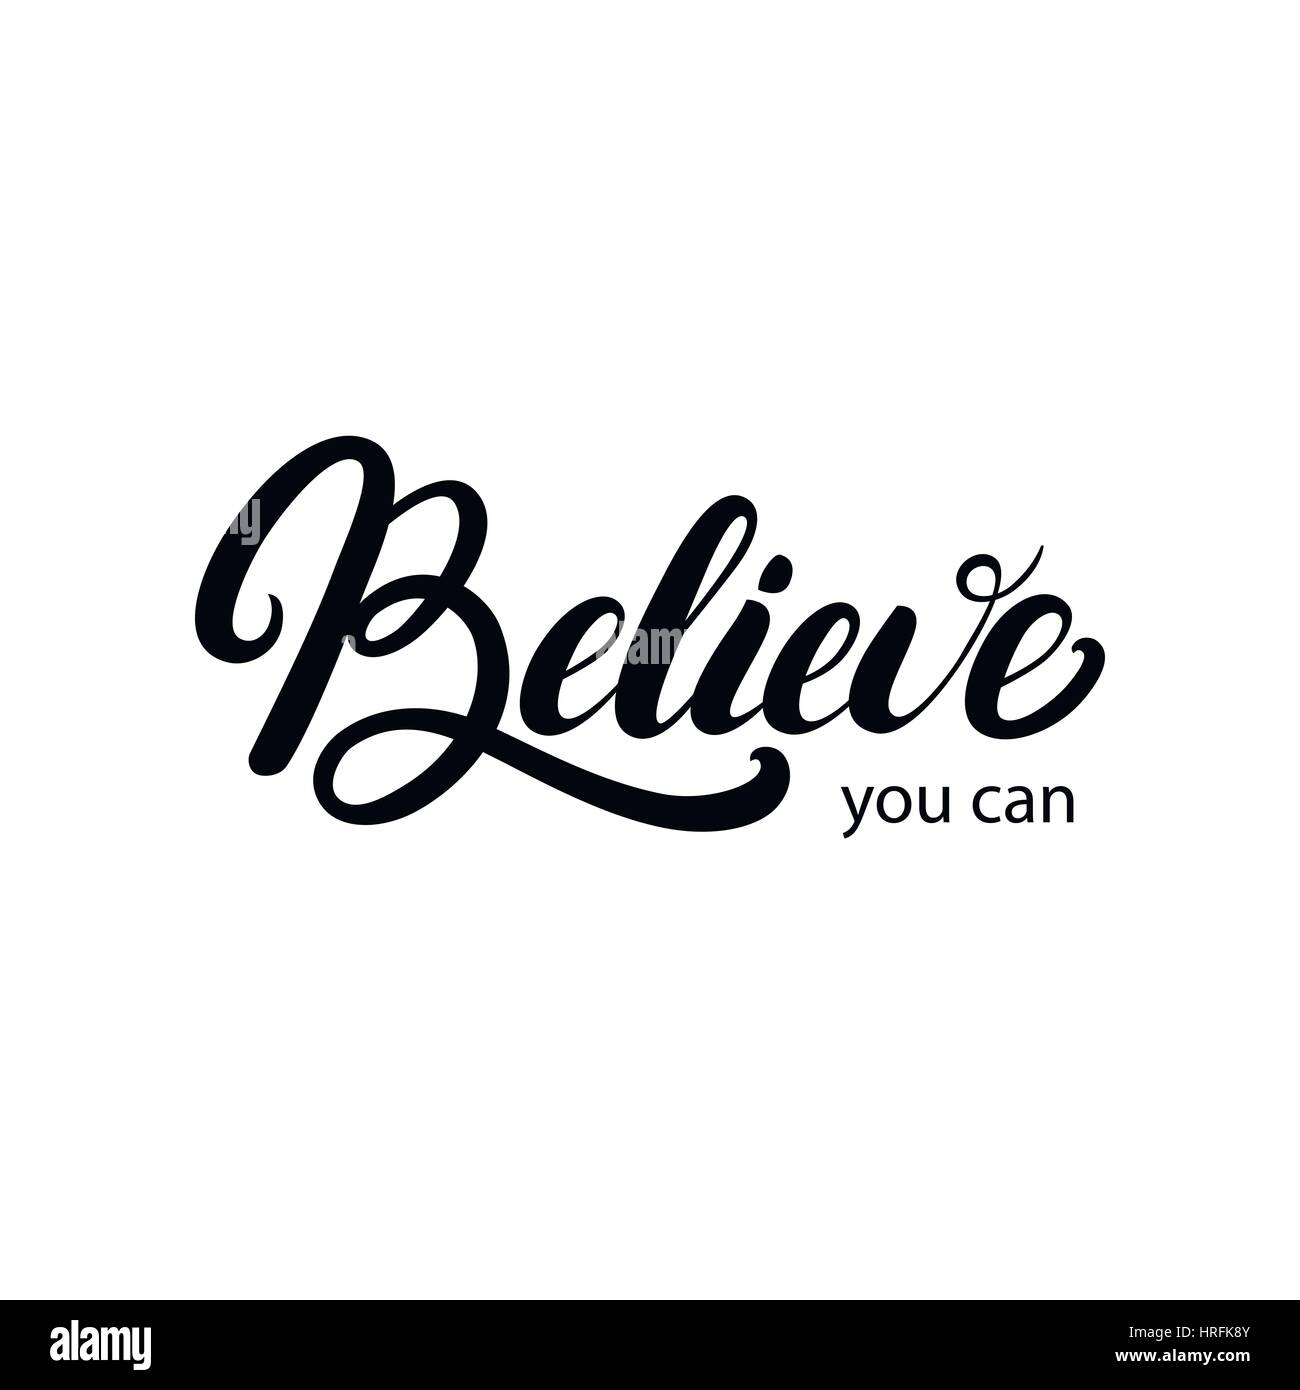 Believe You Can Hand Written Lettering. Inspirational, Motivational Quote.  Modern Brush Calligraphy. Isolated On White Background. Vector Illustration